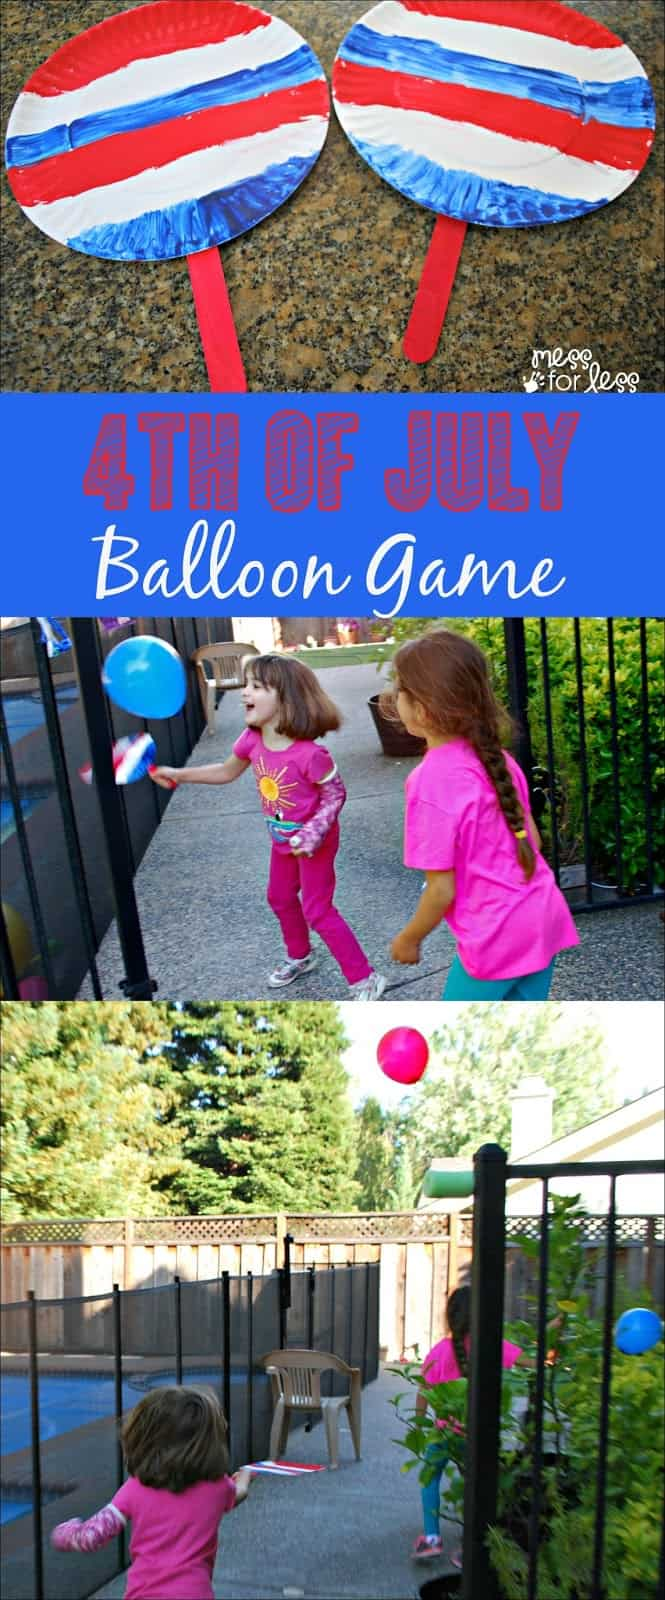 Patriotic game for kids mess for less for Fun balloon games for kids